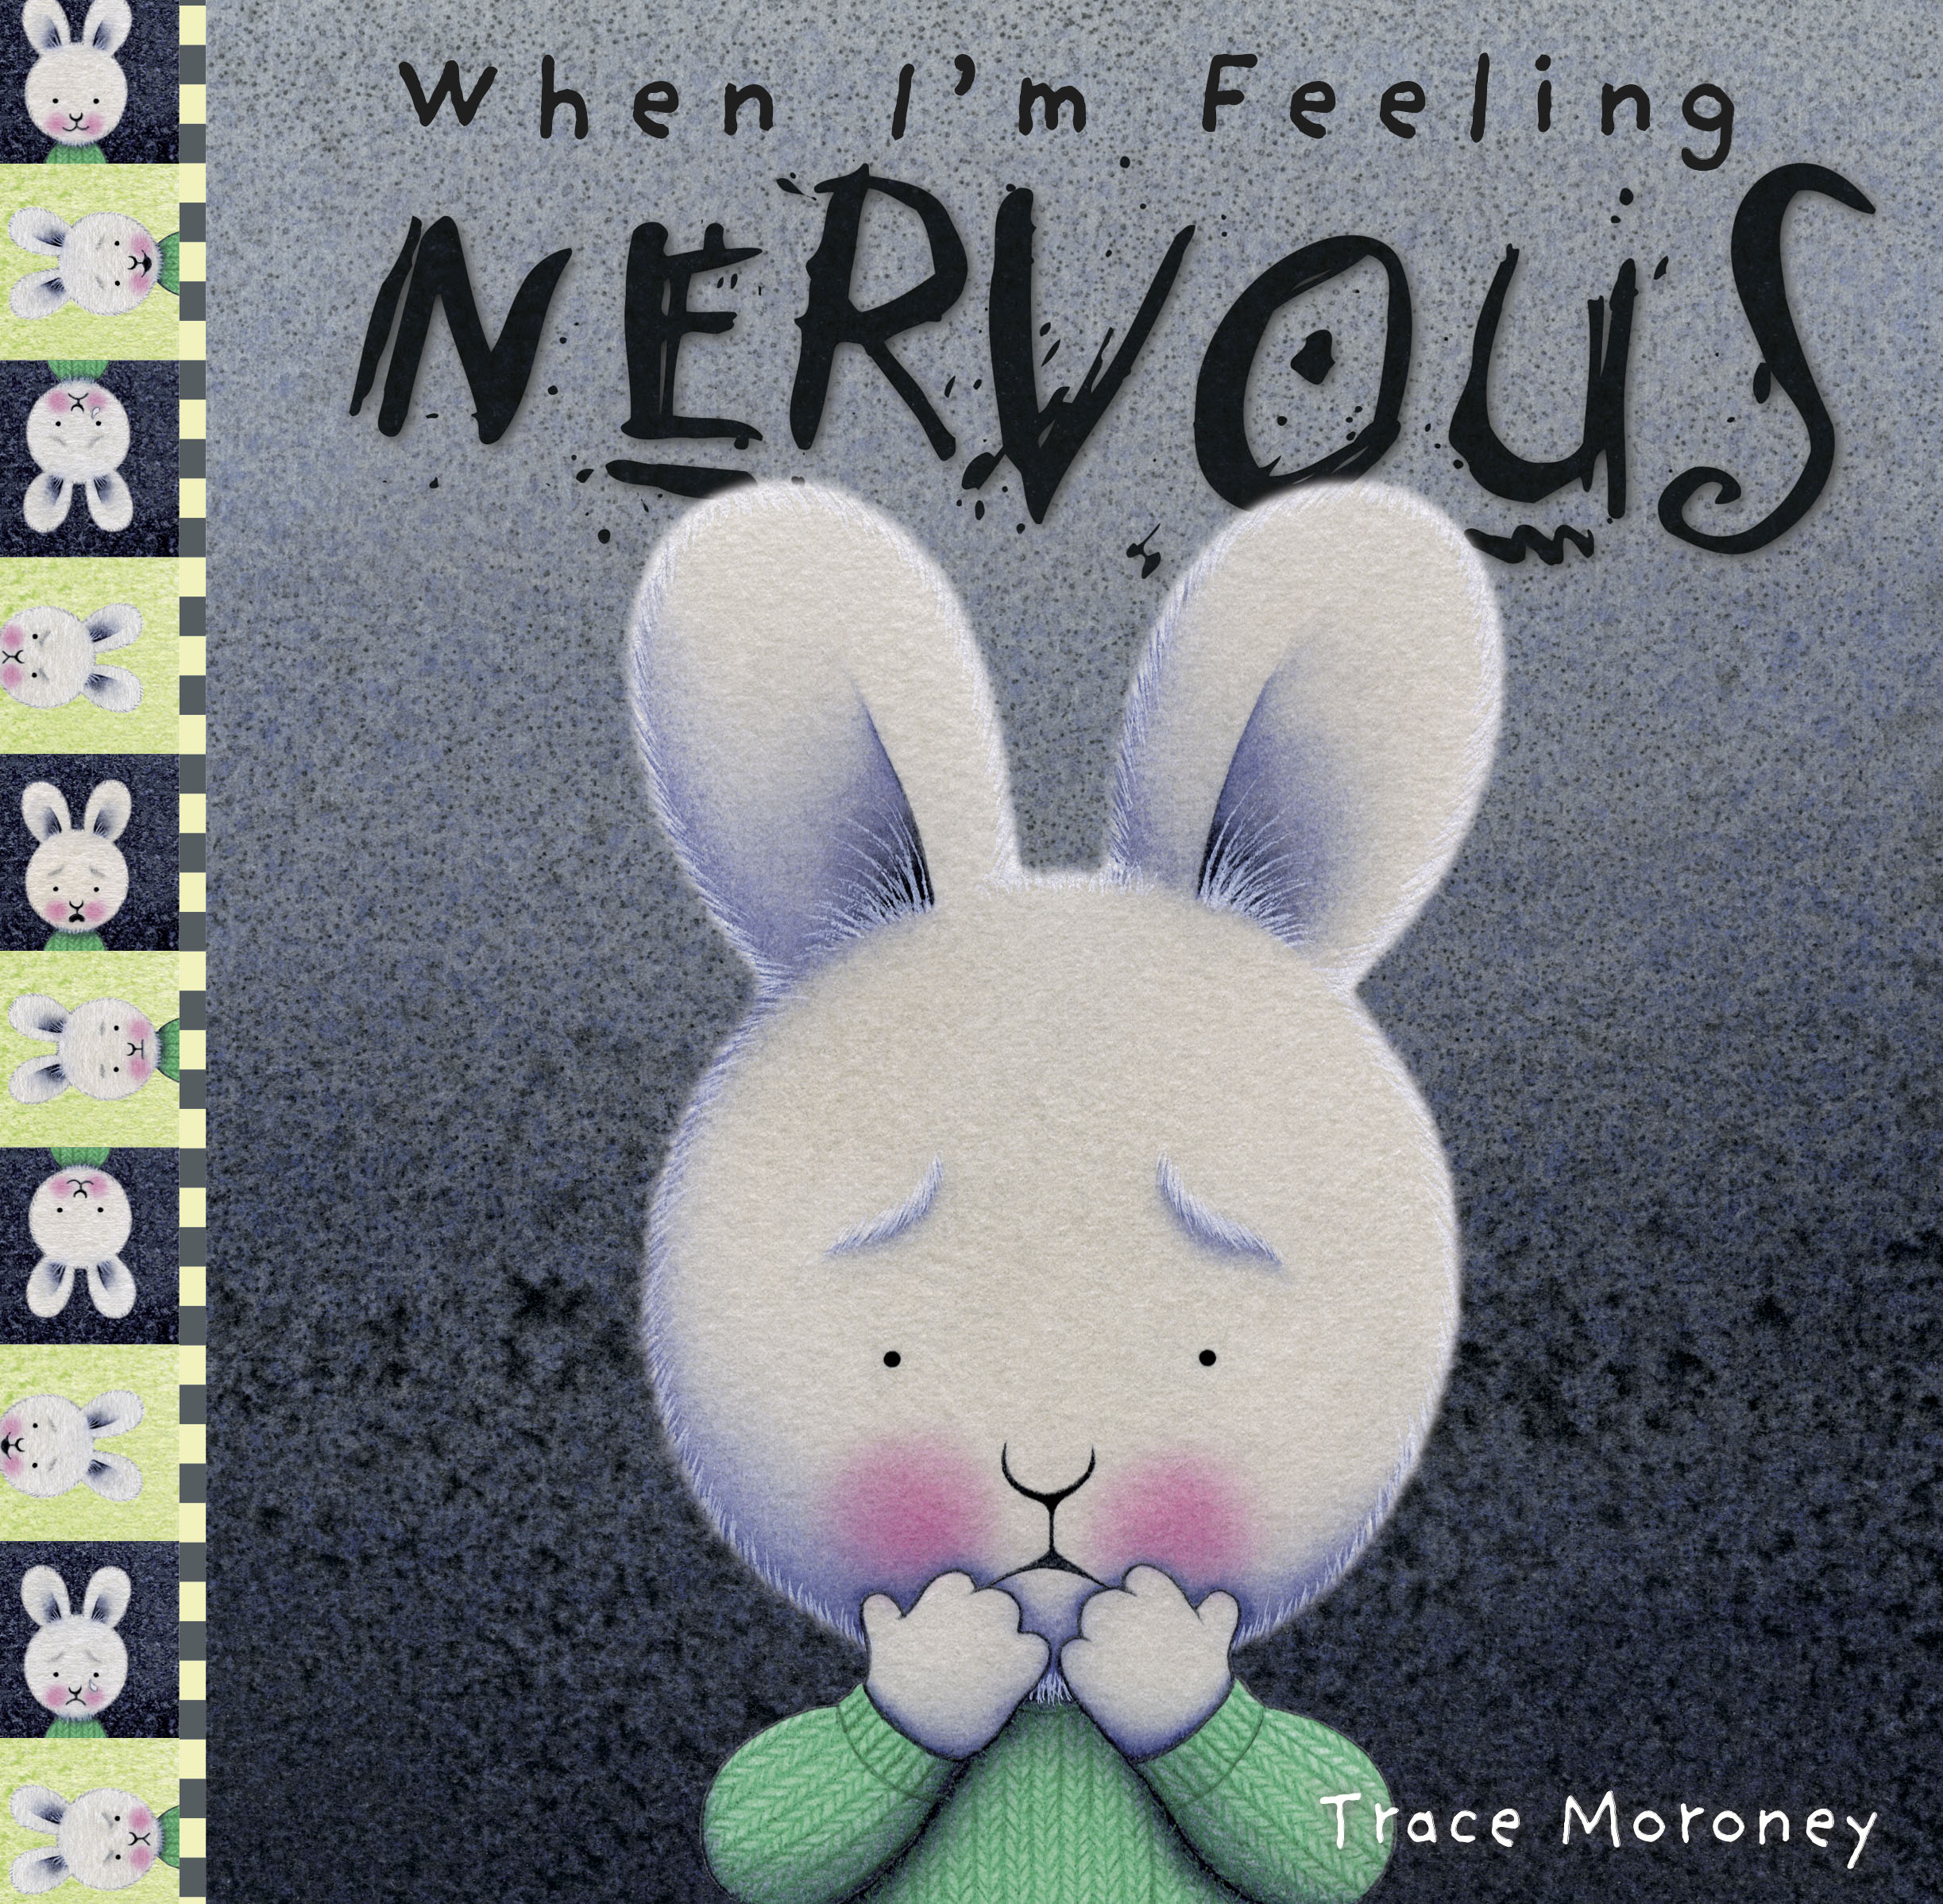 Book Cover Image for When I'm Feeling Nervous